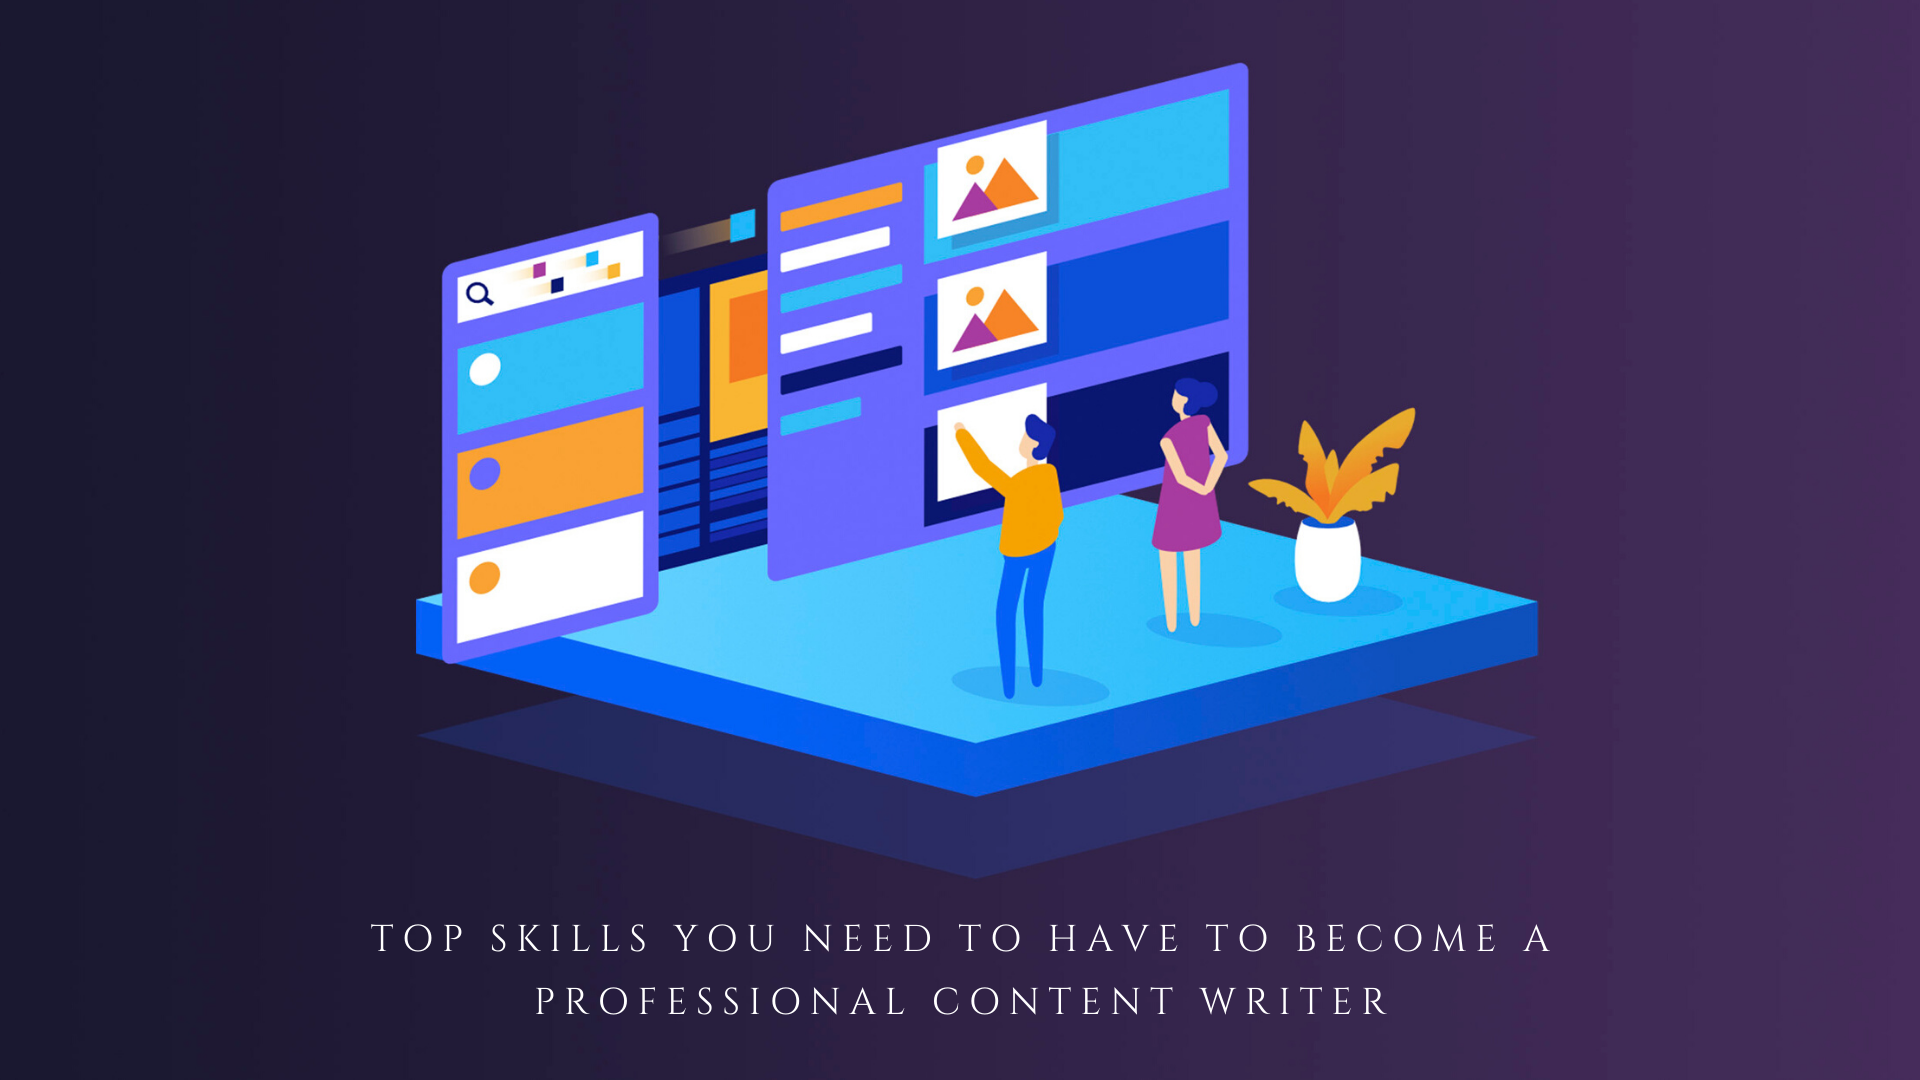 Top Skills You Need to Have to Become a Professional Content Writer